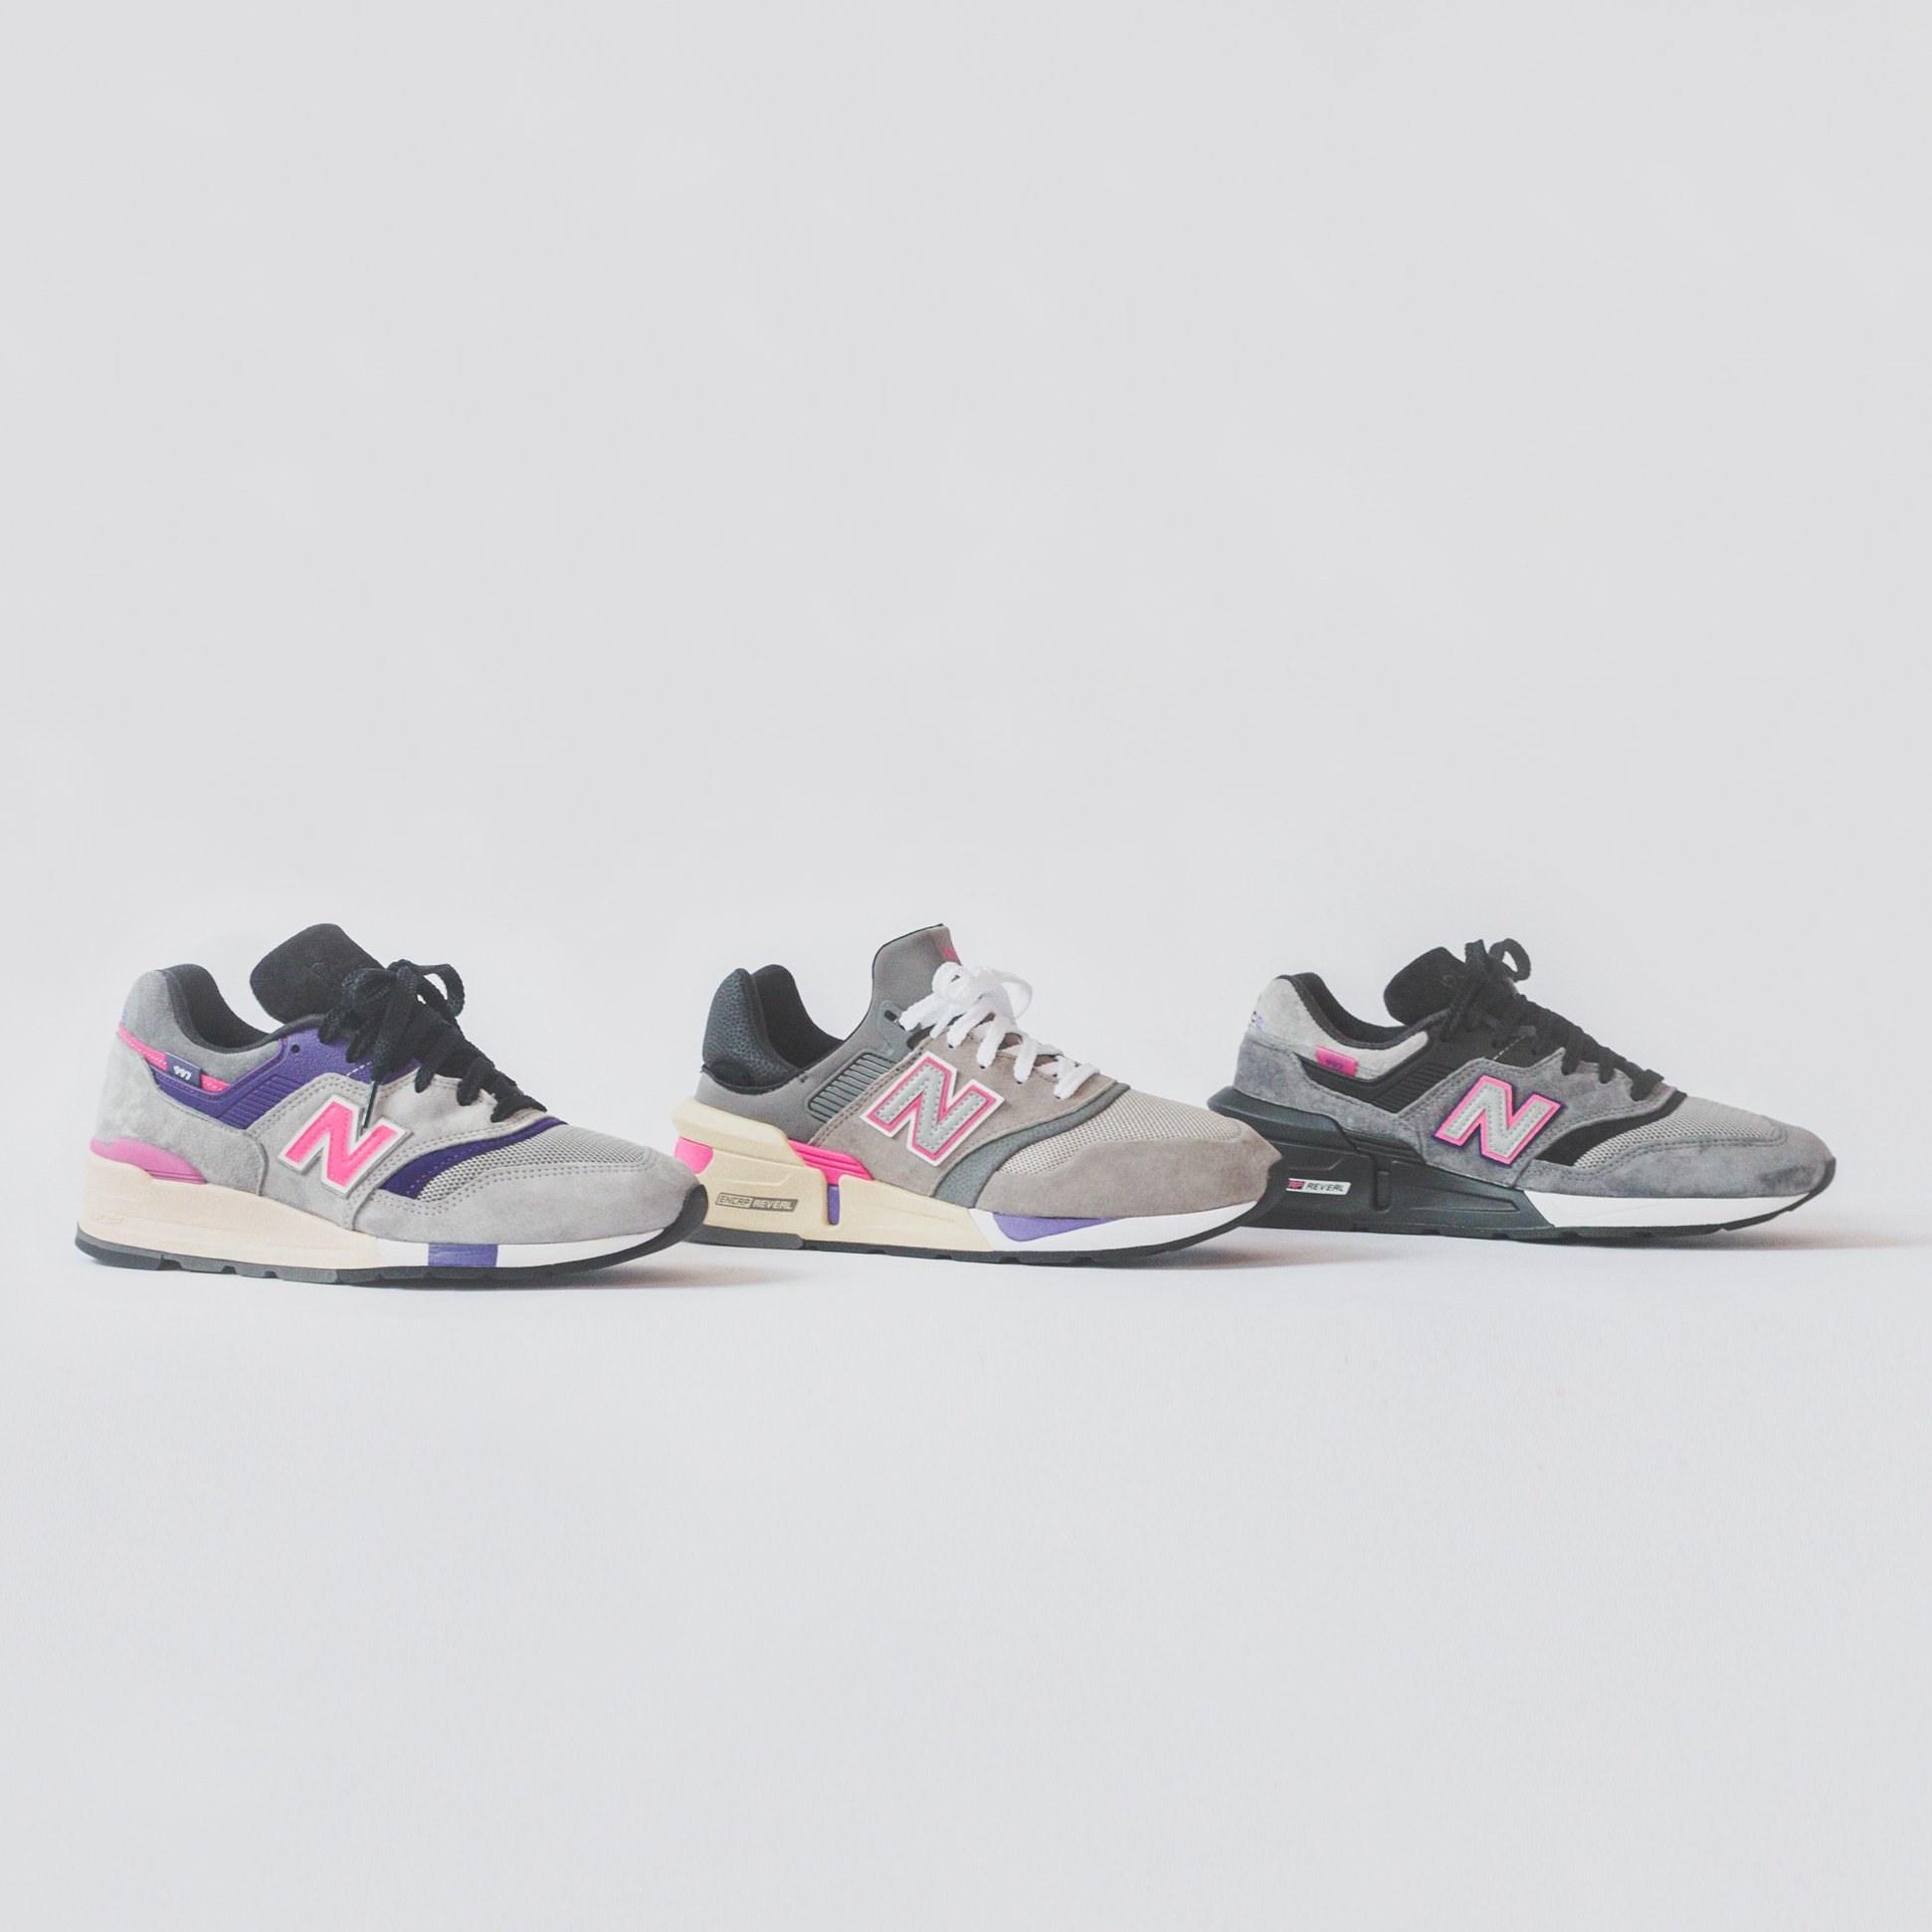 quality design 03a14 9d897 Ronnie Fieg is Dropping Six New Balance Colorways For Latest ...